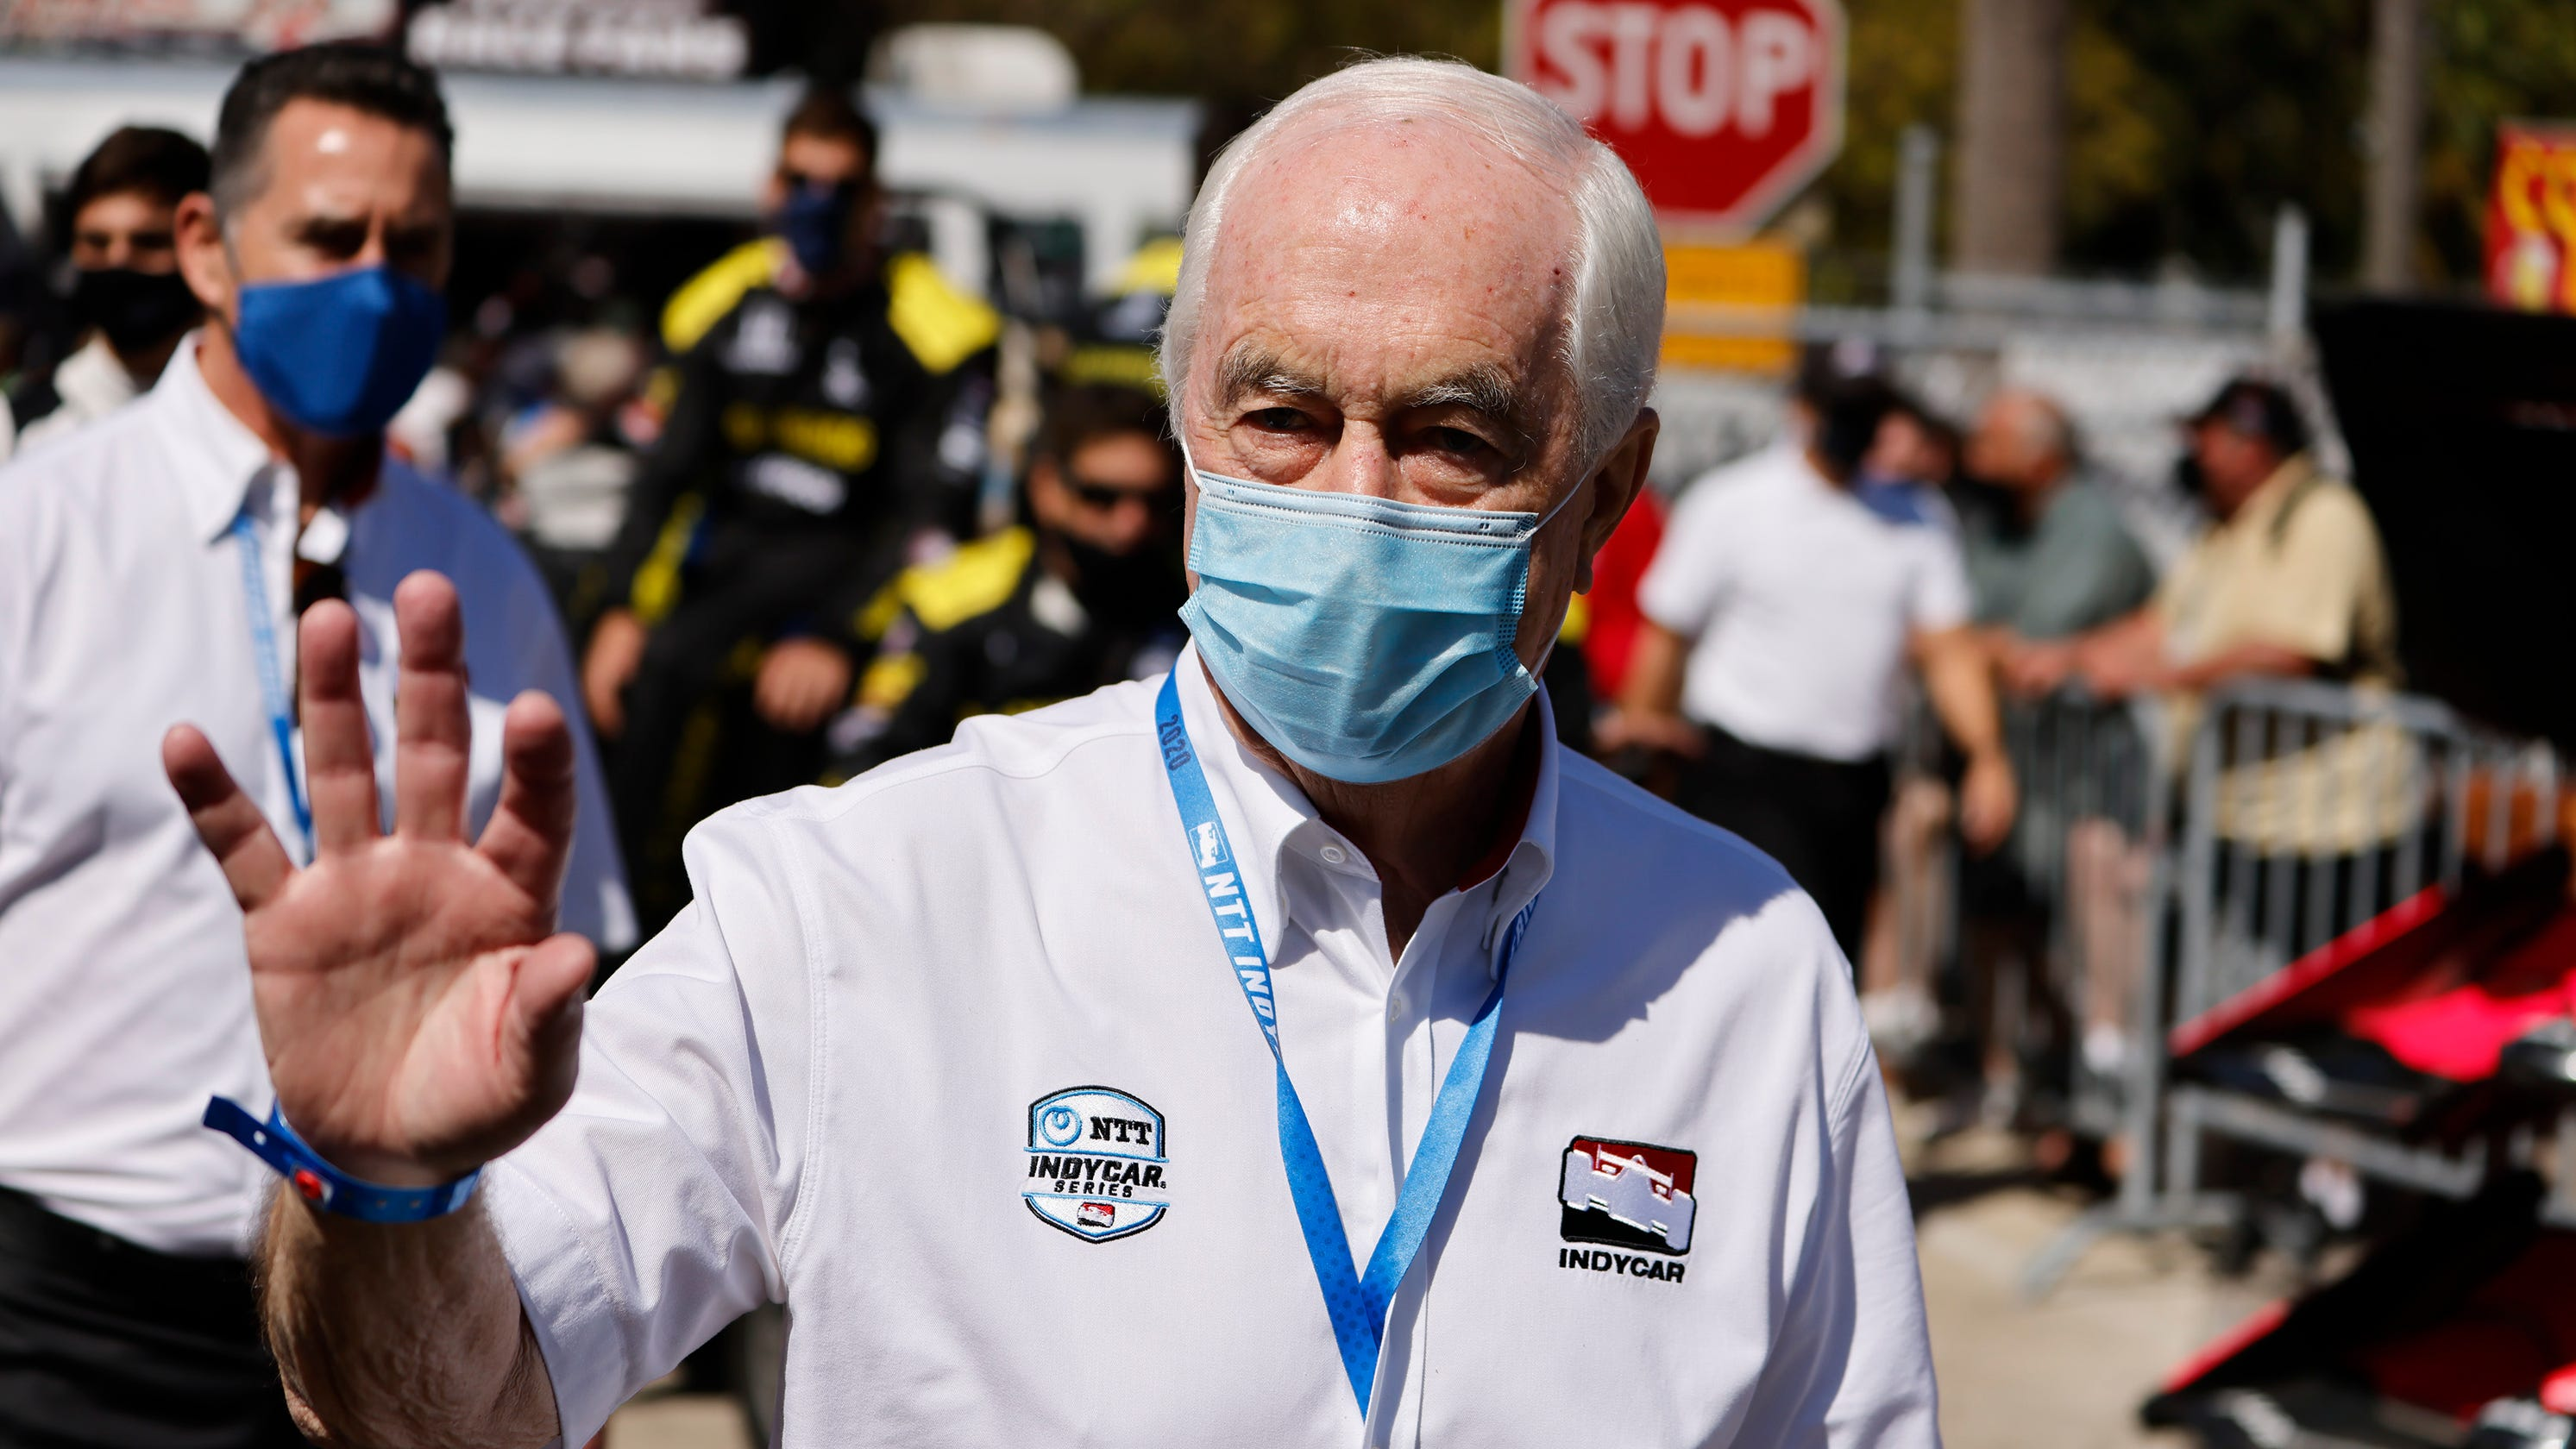 Roger Penske on hopes for Indy 500 fan attendance: 'Our goal is to have 250,000'